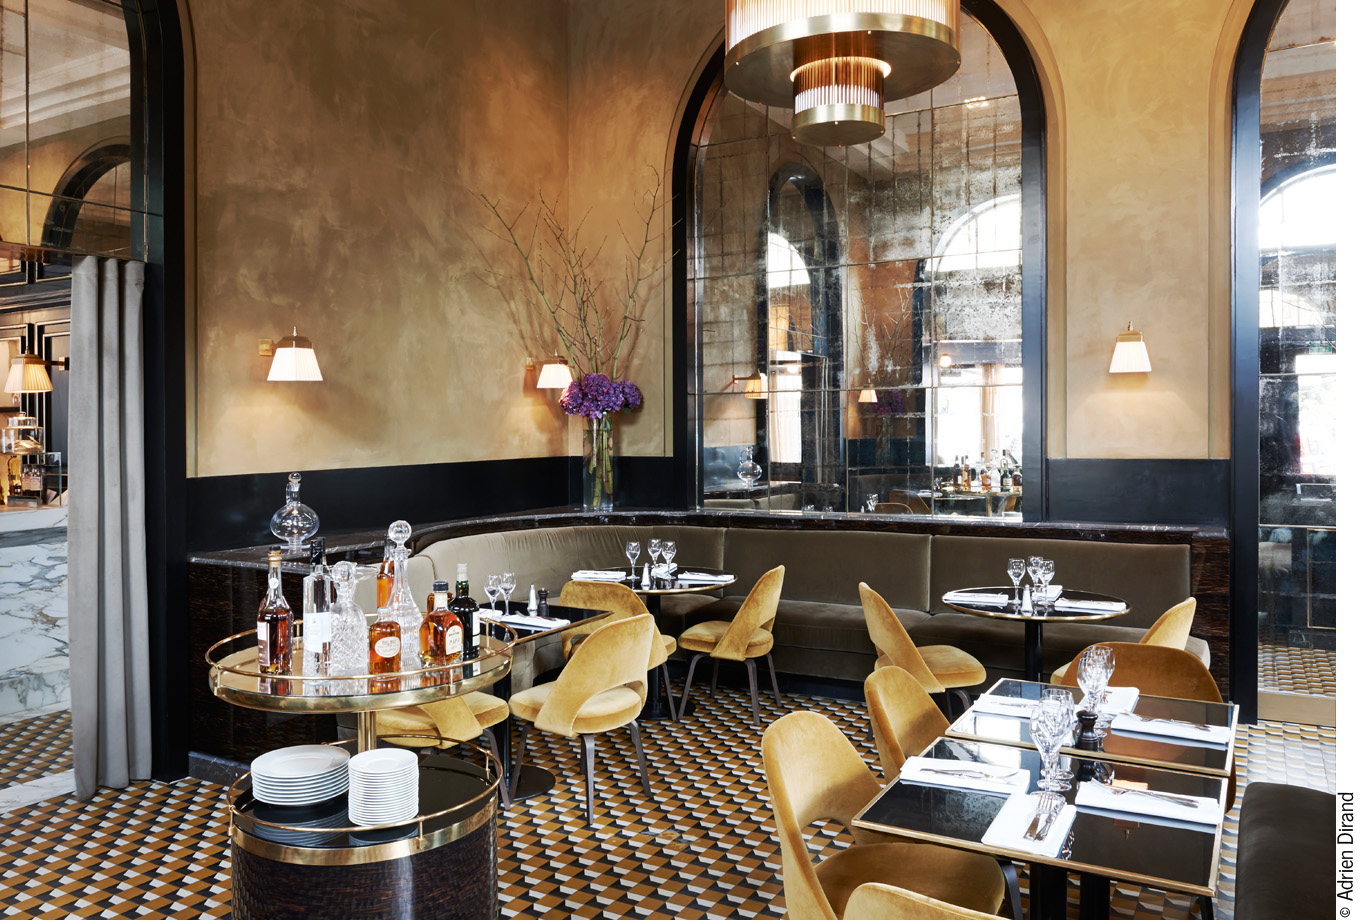 Le Flandrin: a jewel of a restaurant in Paris.